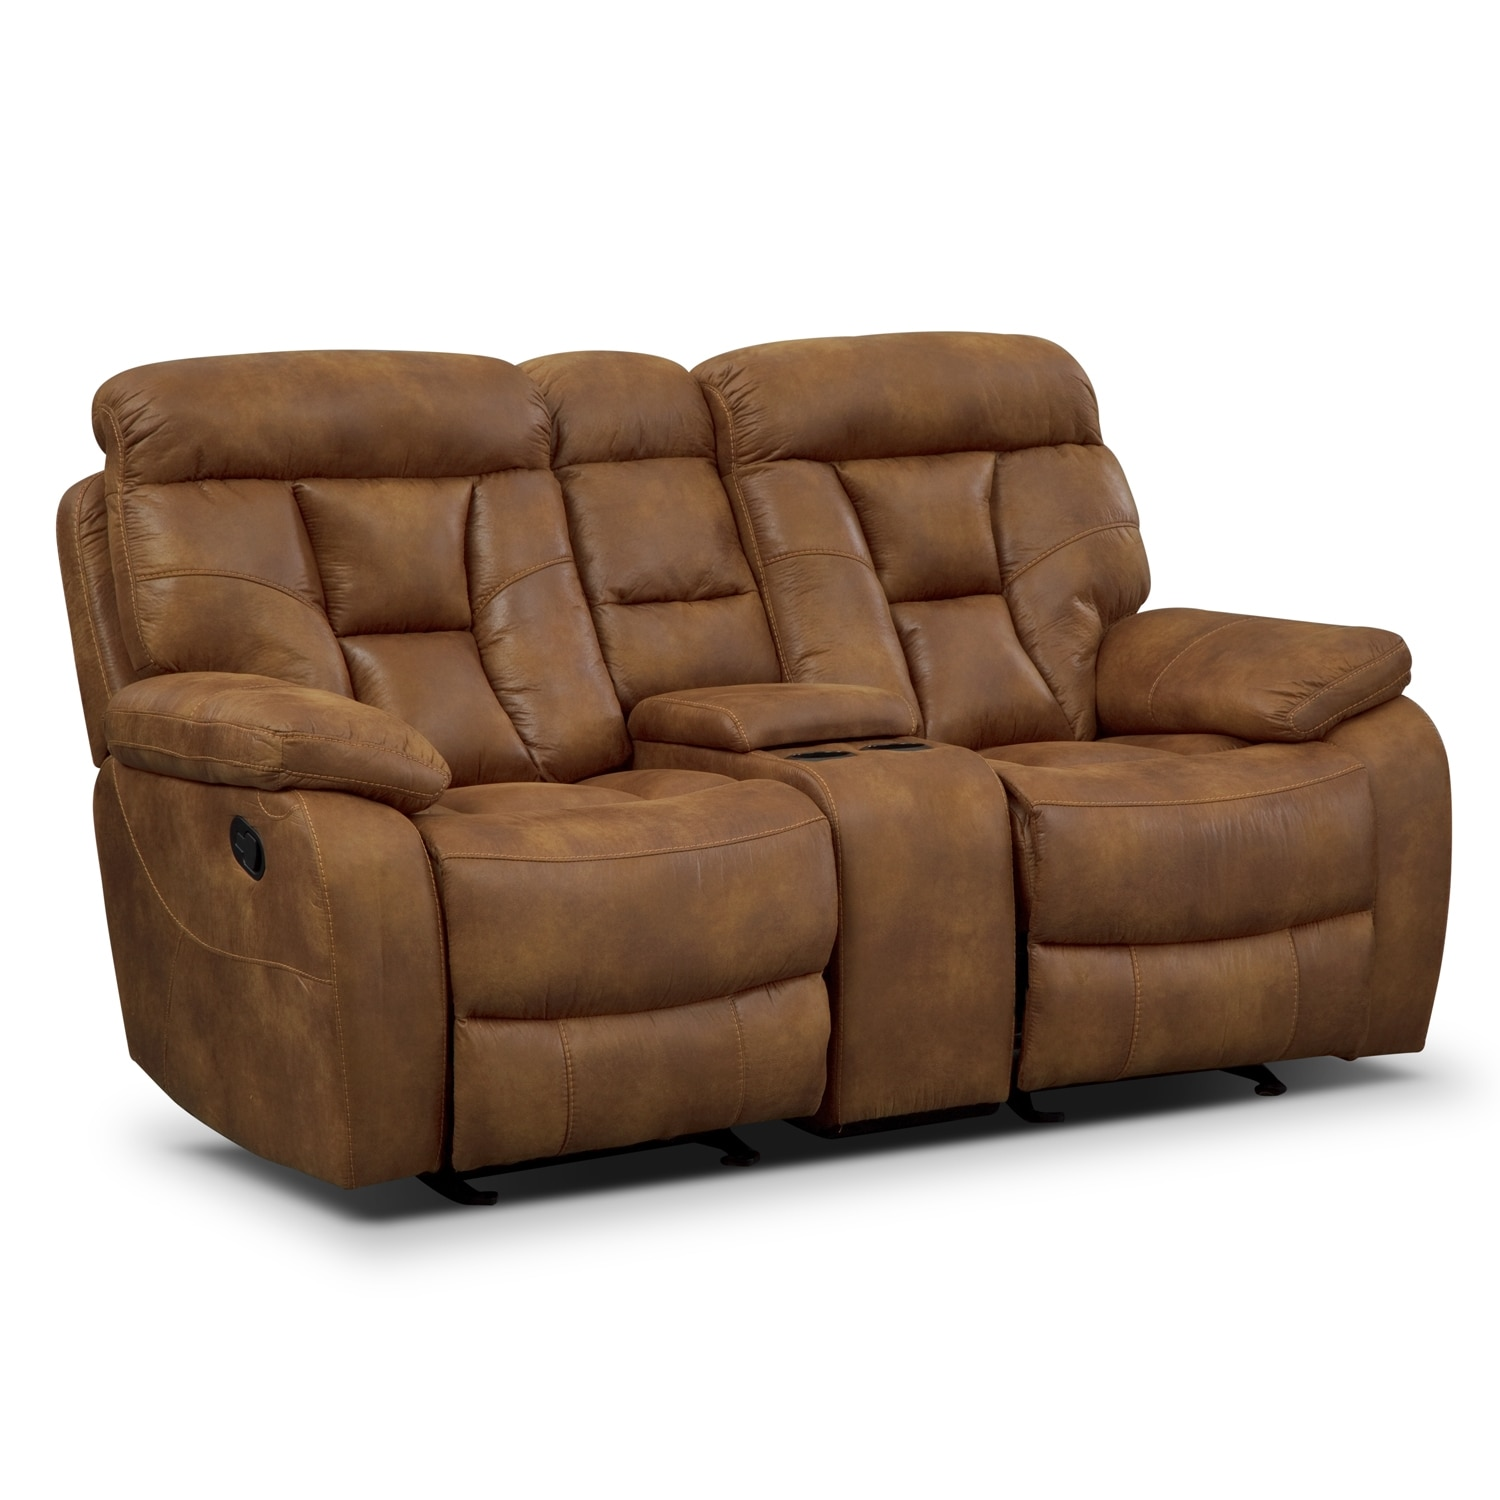 Living Room Furniture - Dakota II Glider Reclining Loveseat with Console